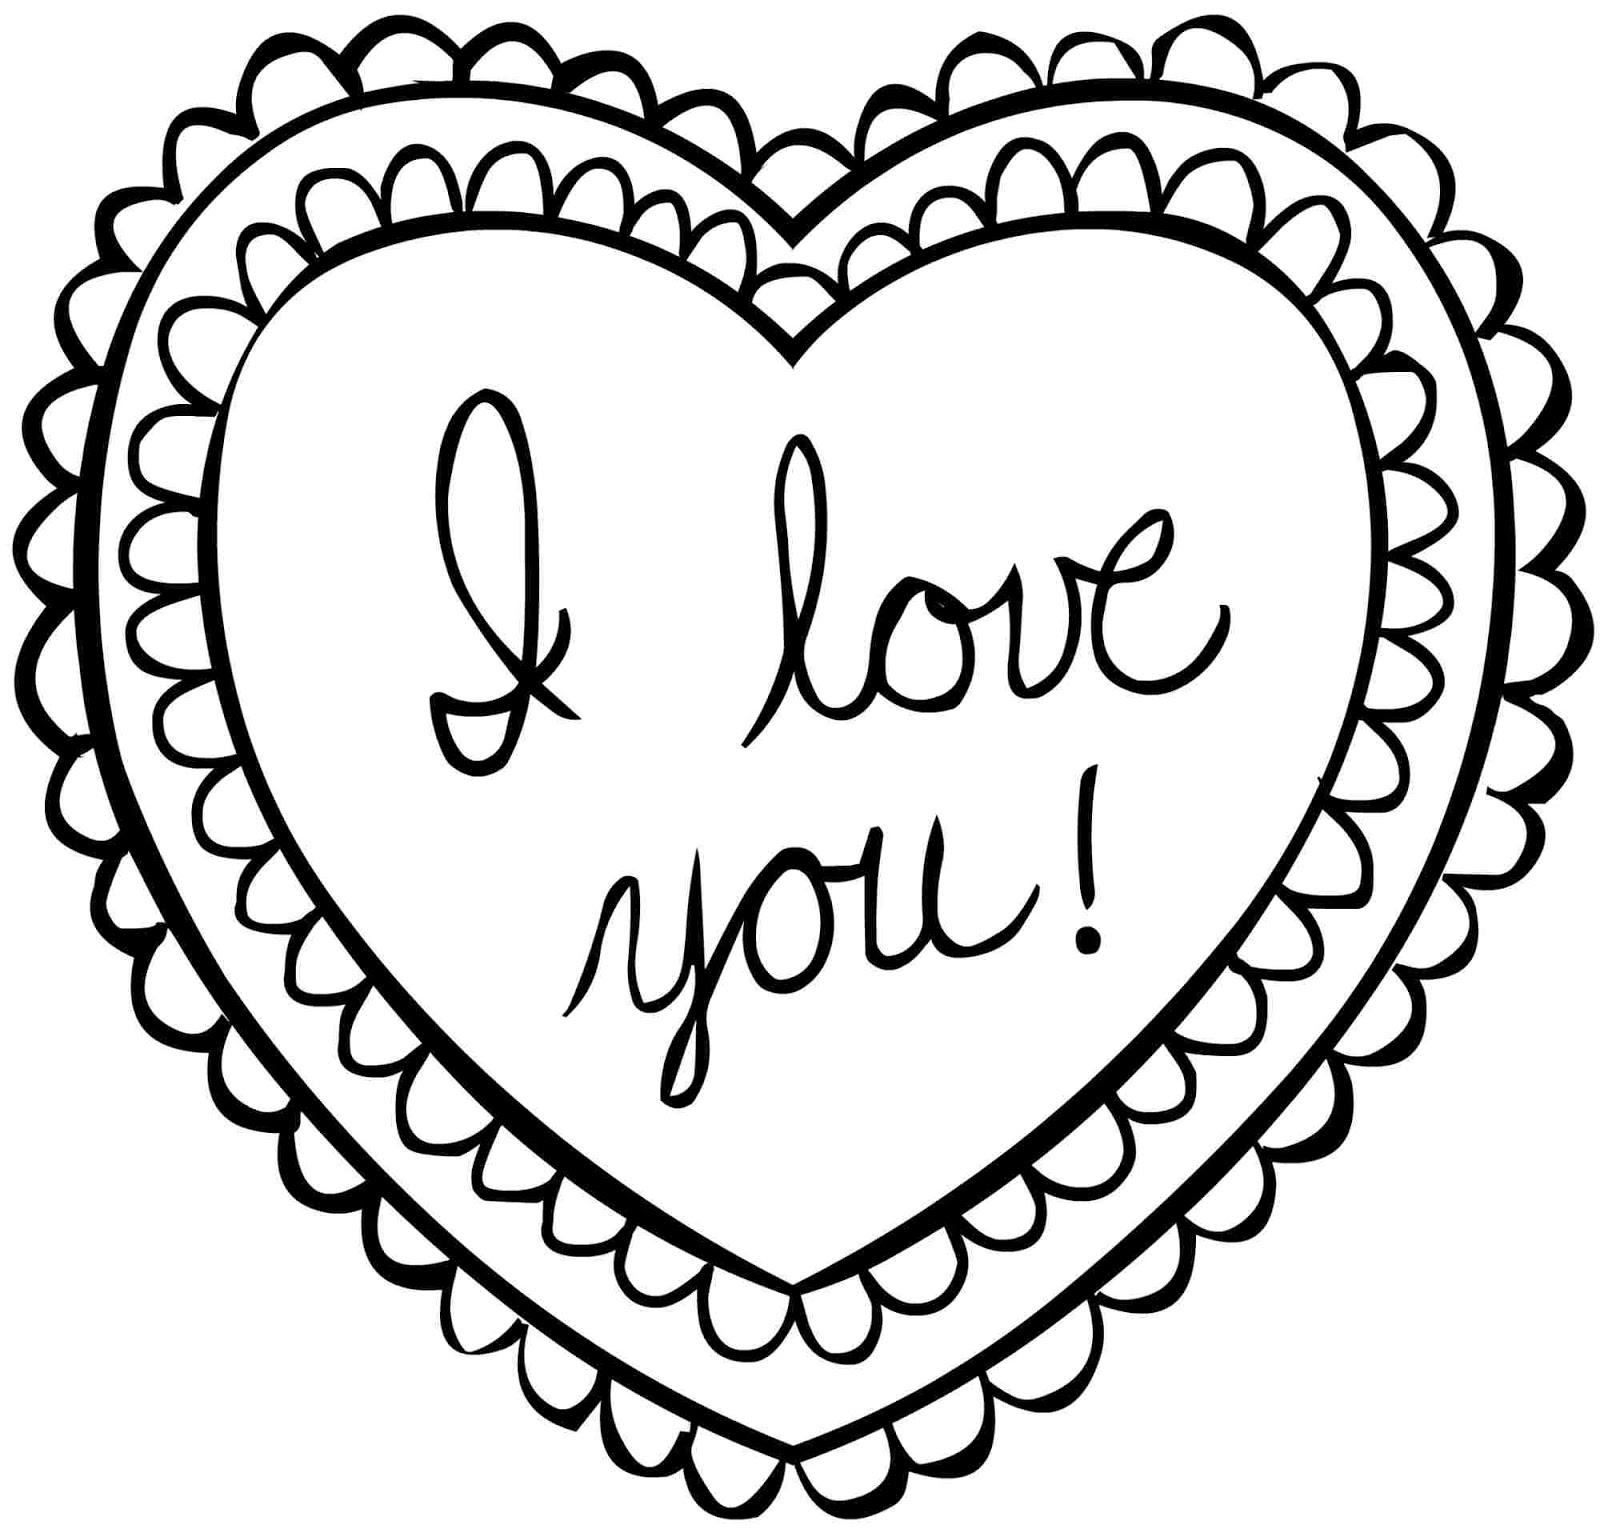 hearts coloring page a heart to color by 366heartscom teachkidsart hearts coloring page